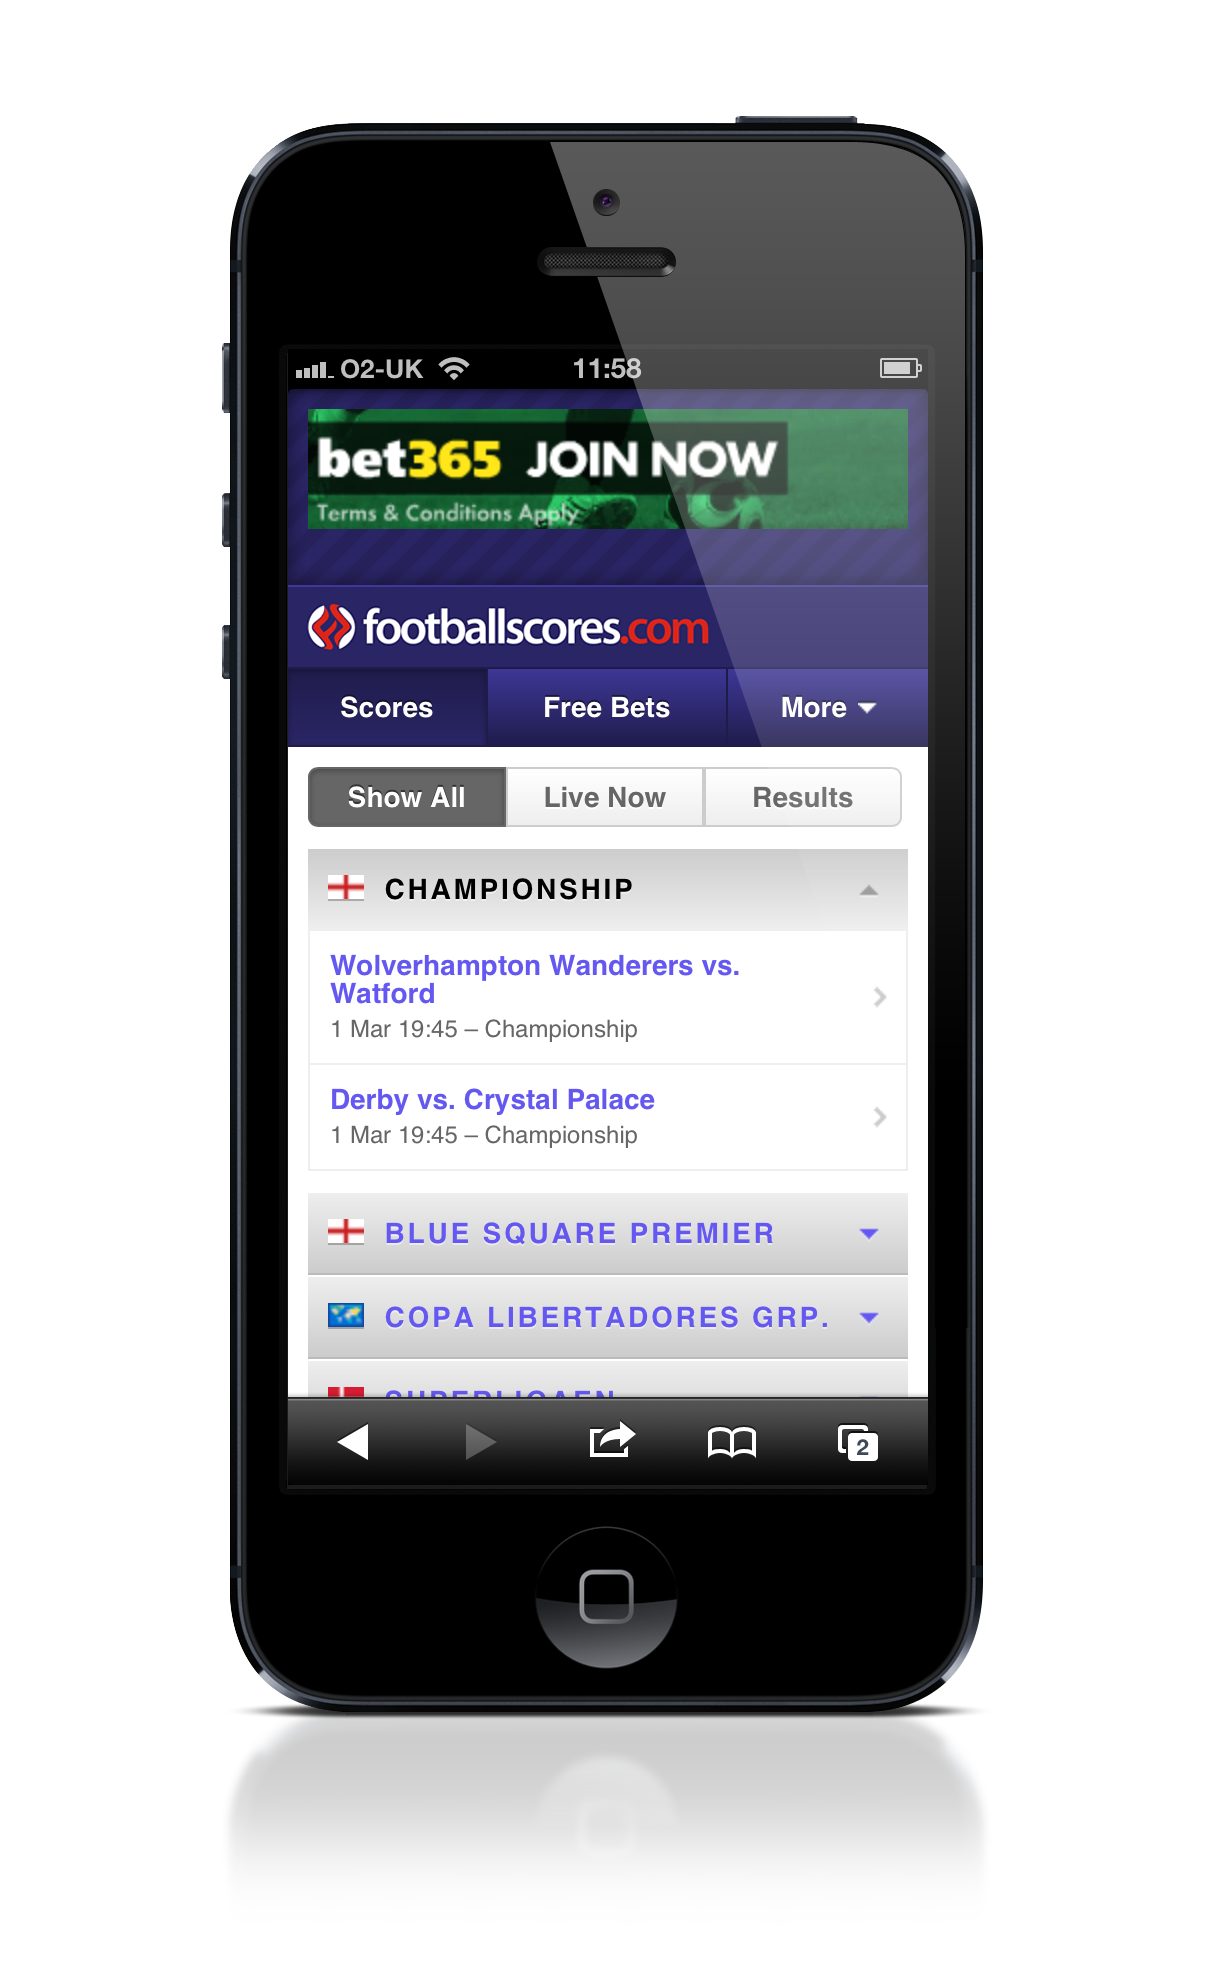 Footballscores.com Mobile Site